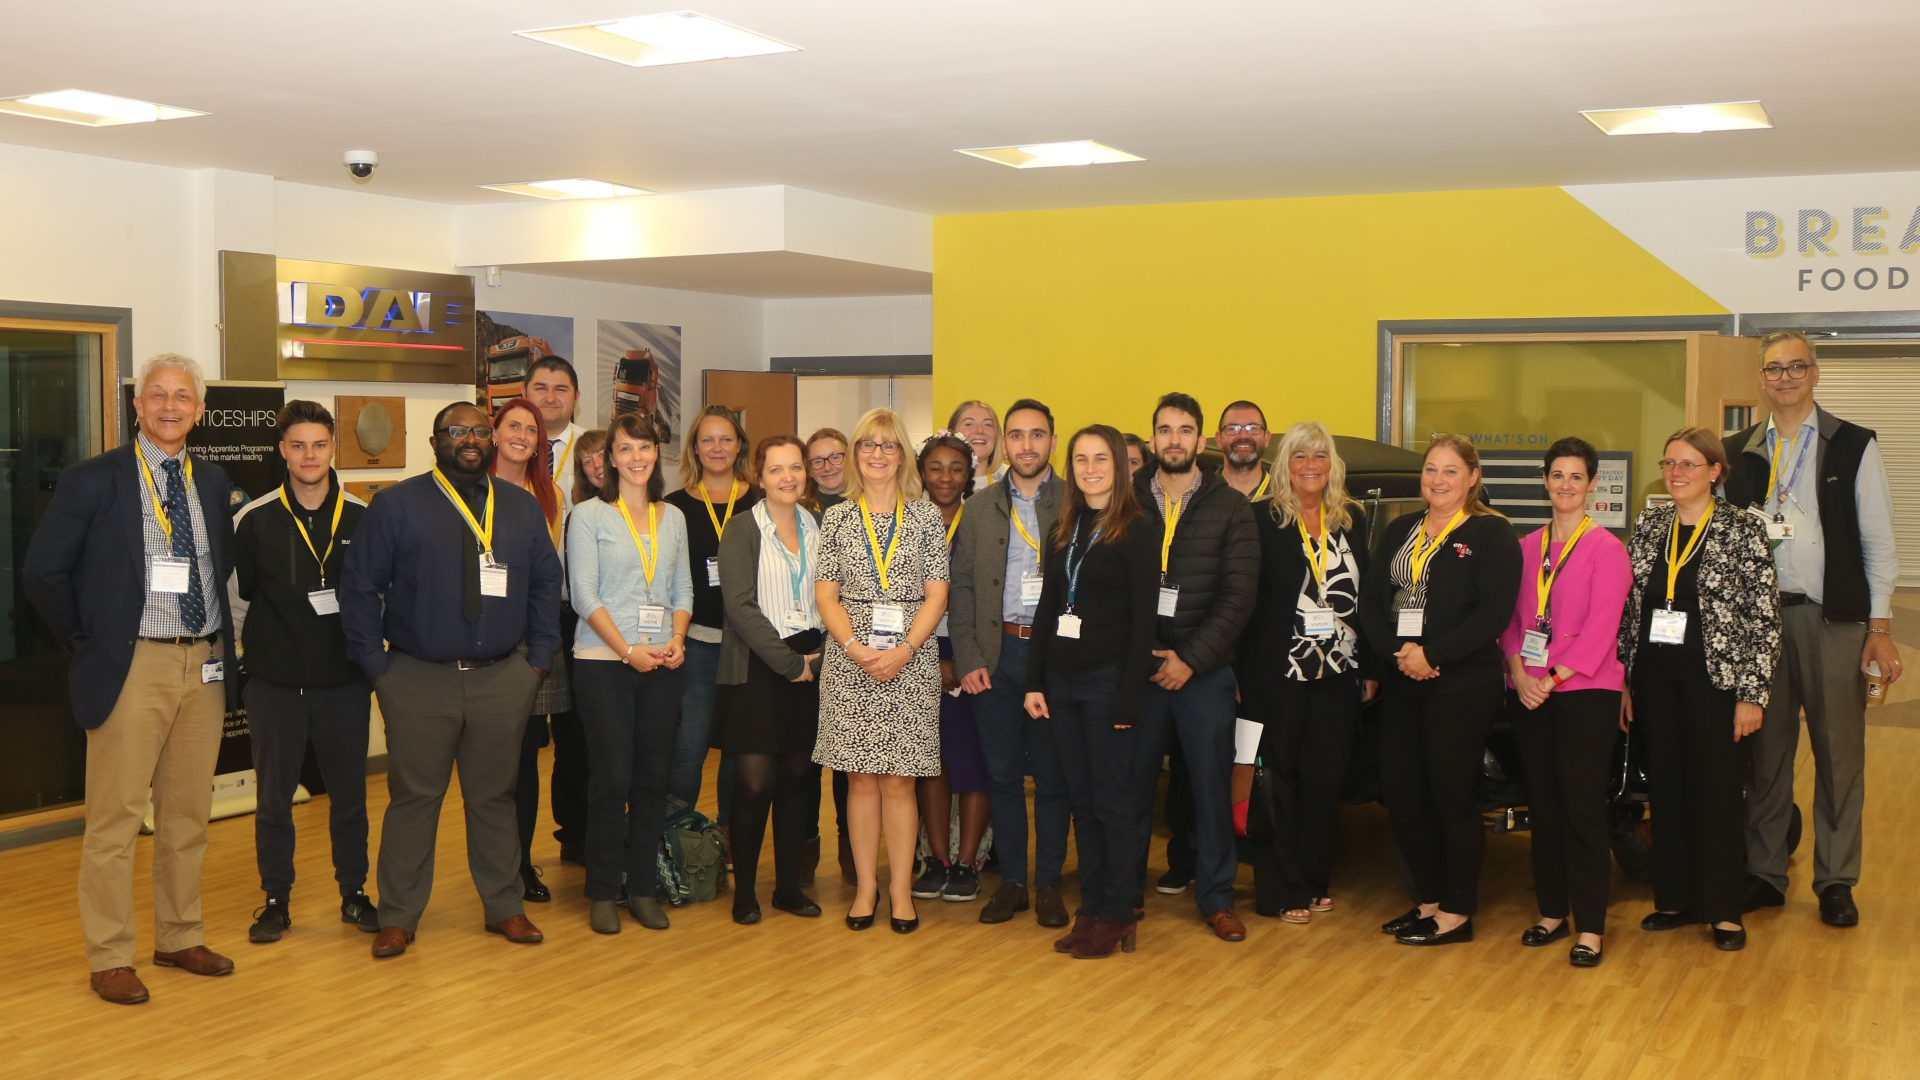 Group shot of staff members at careers event, Ambitions